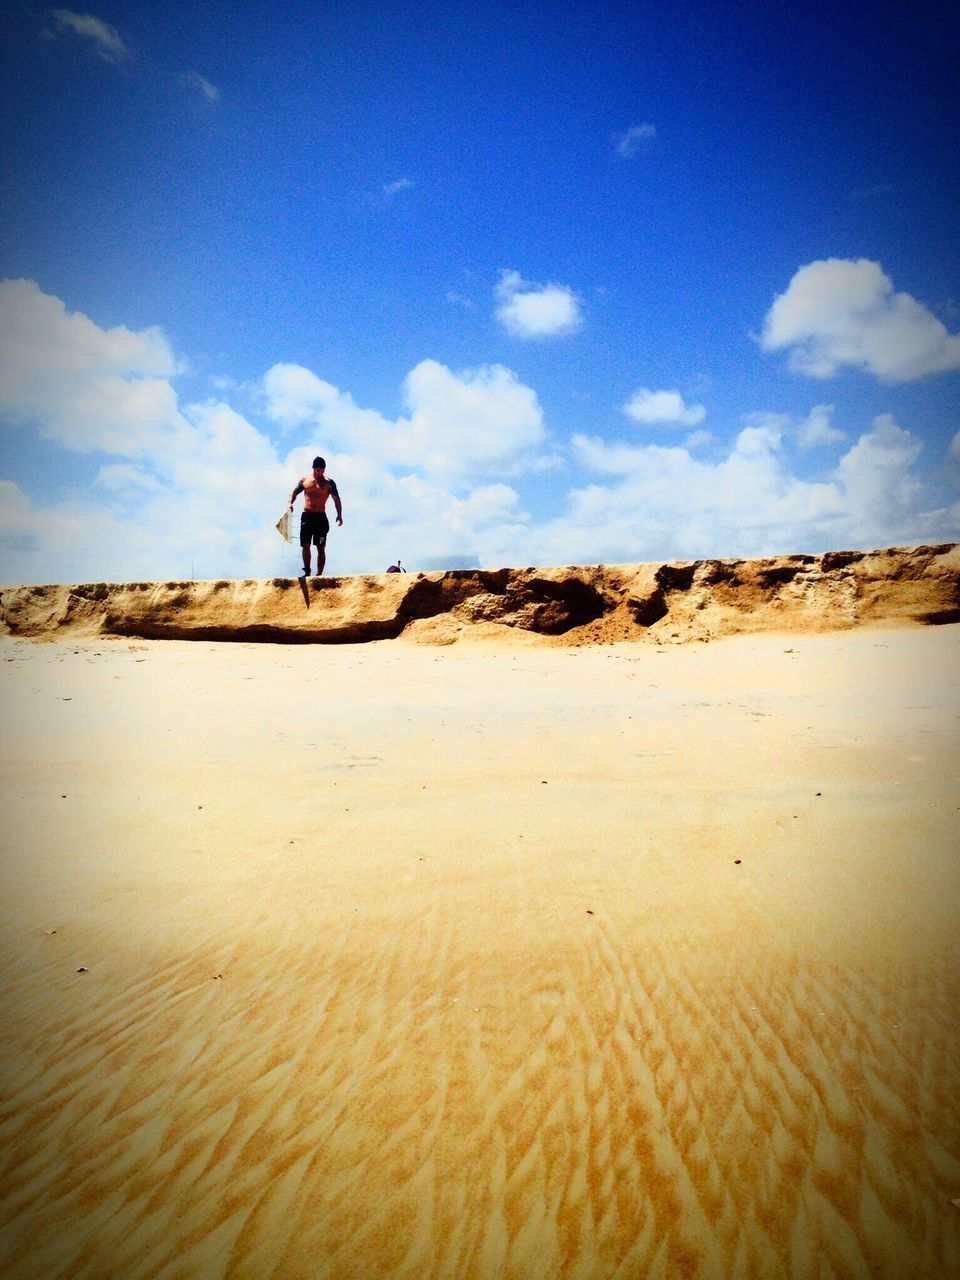 sky, landscape, one person, full length, sand, walking, nature, day, desert, outdoors, adventure, real people, sand dune, people